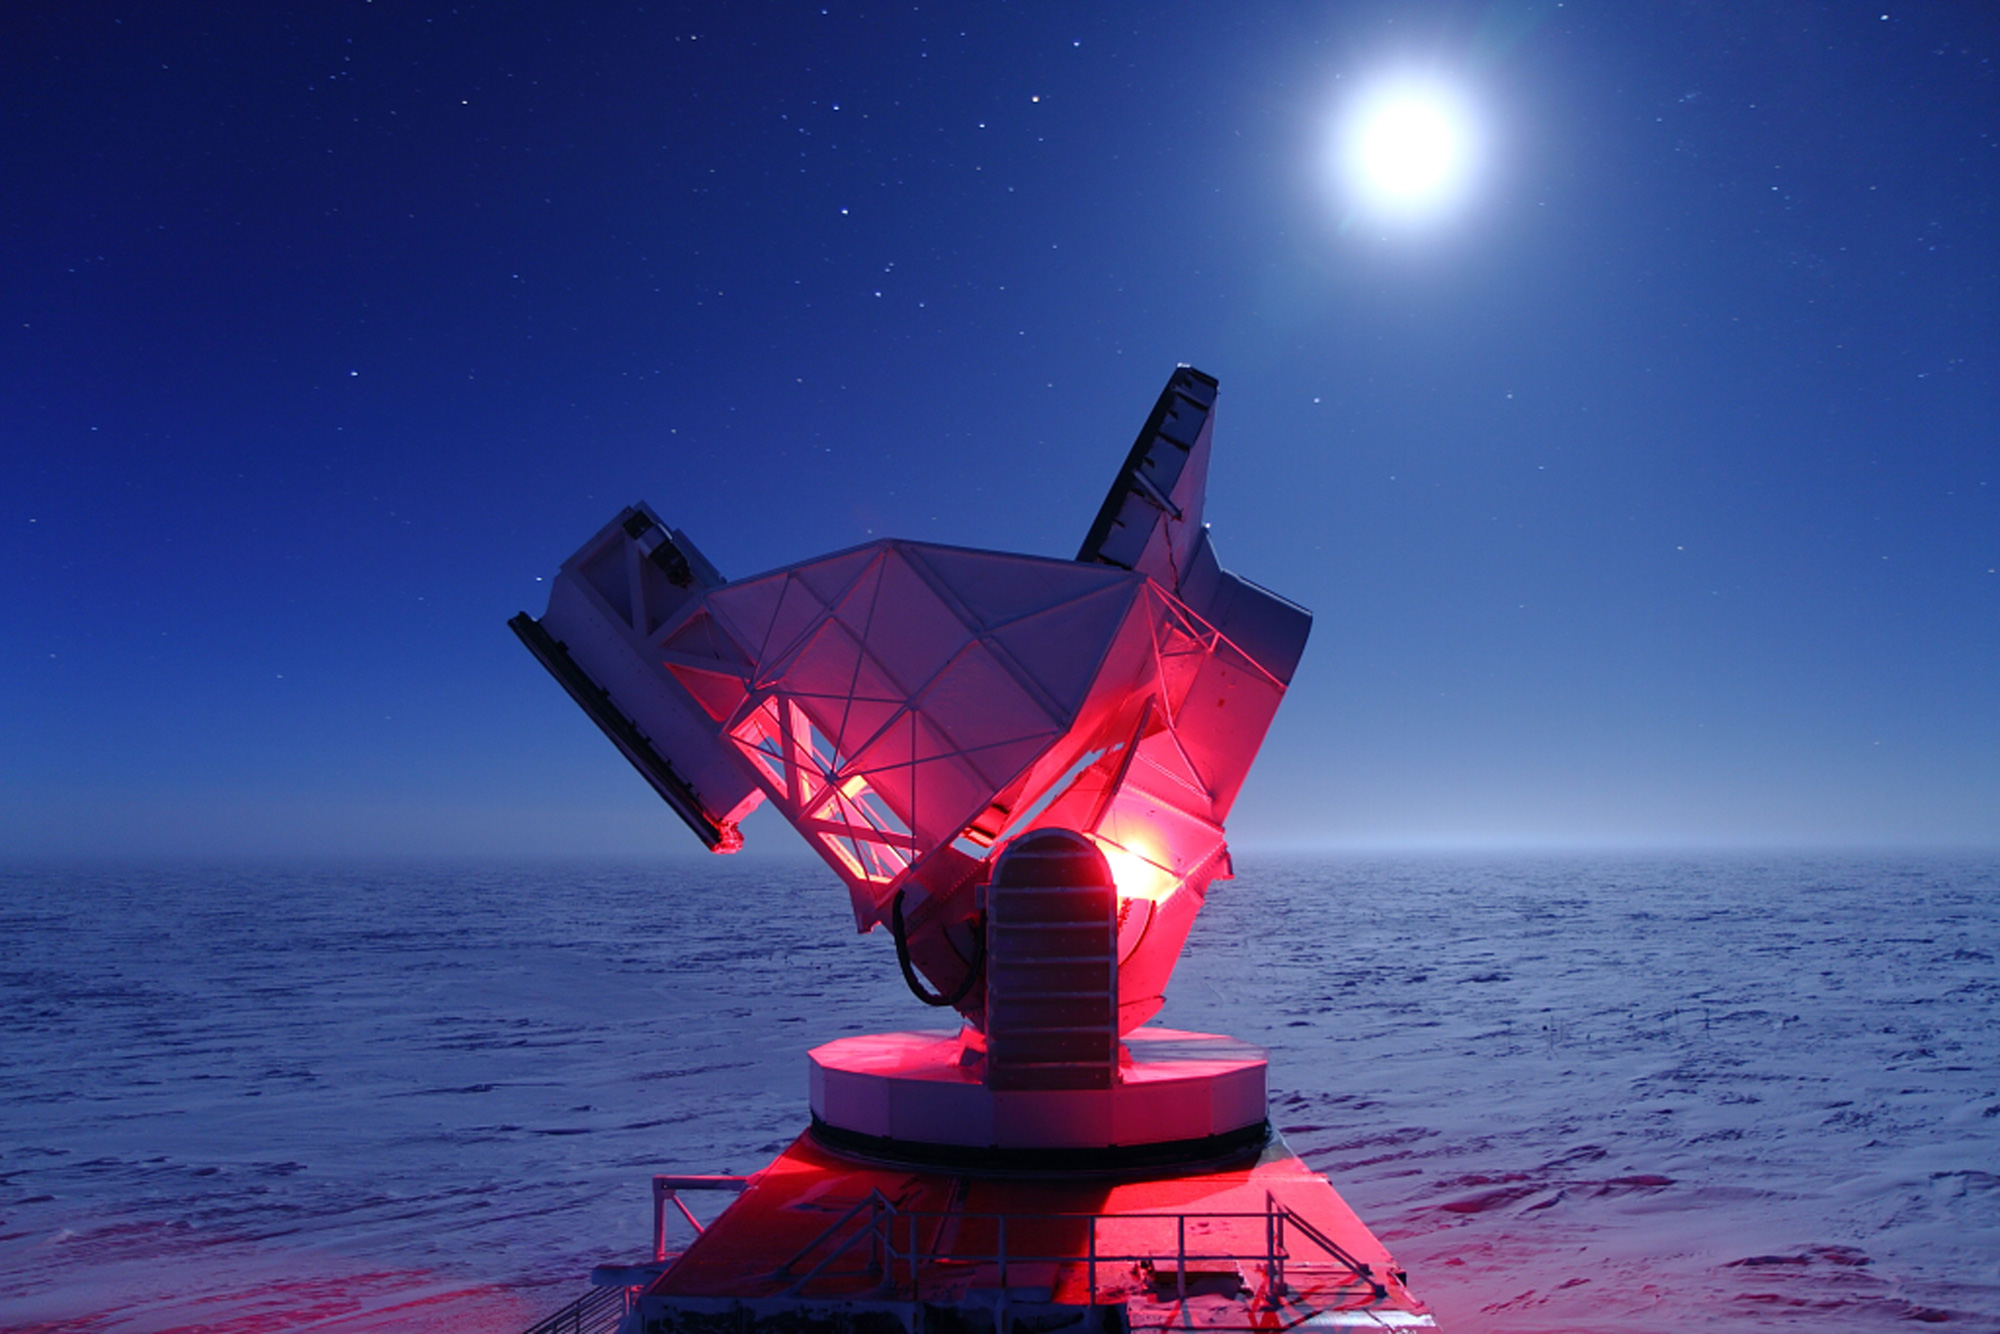 The South Pole Telescope at night.